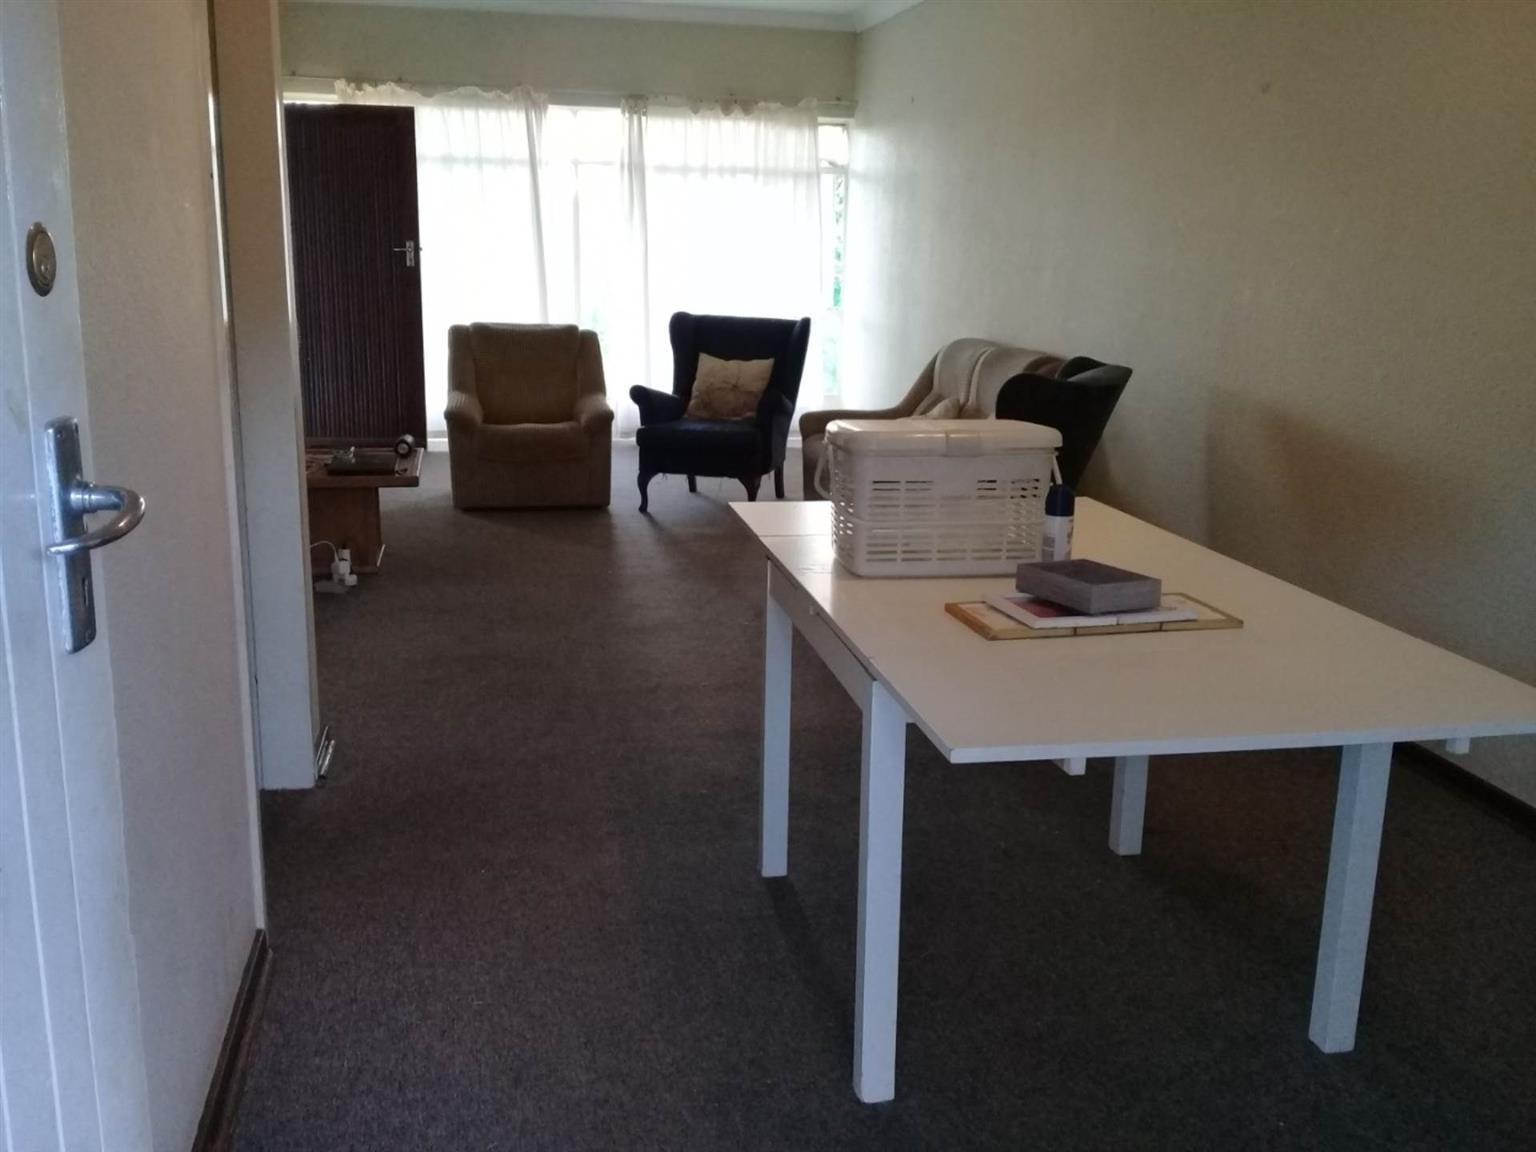 Apartment Rental Monthly in EASTLEIGH RIDGE